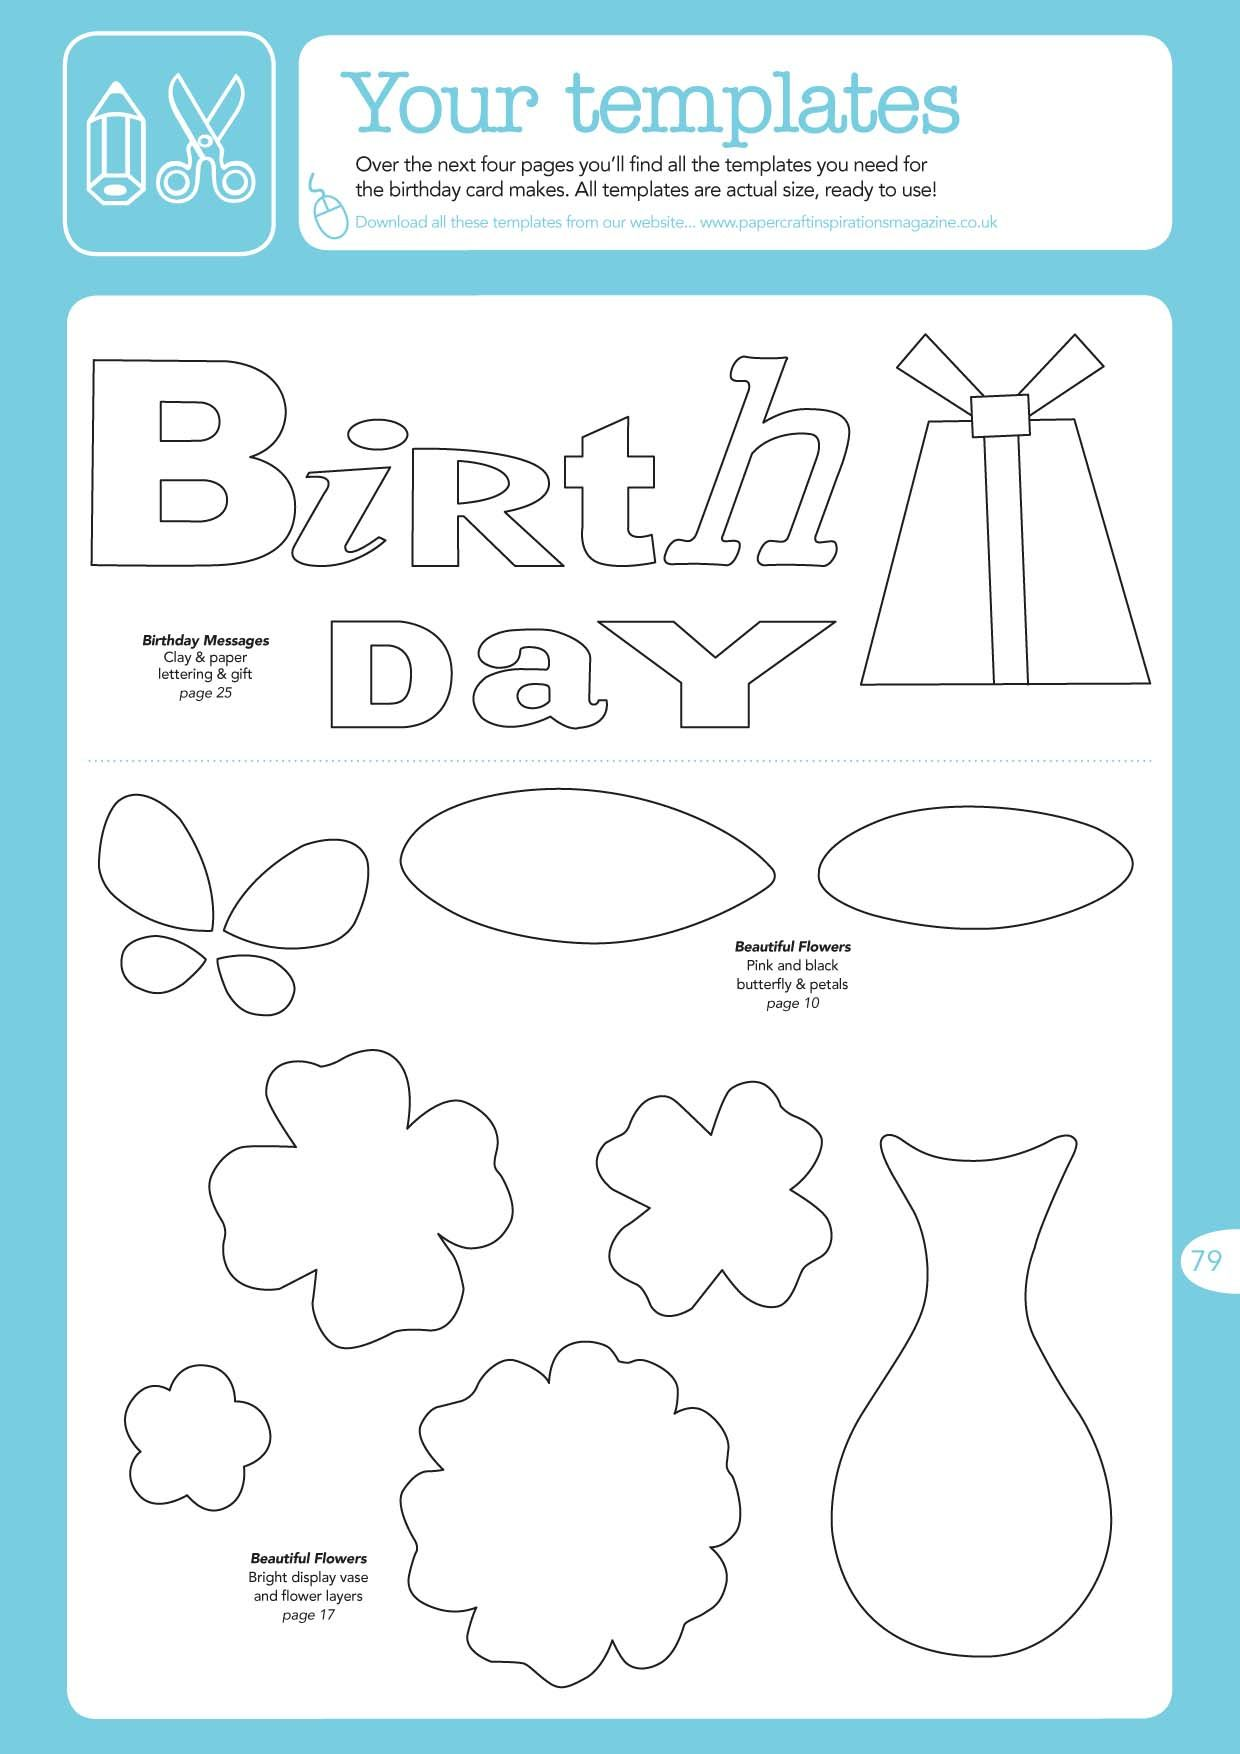 craft templates FREE Birthday Card Ideas templates to